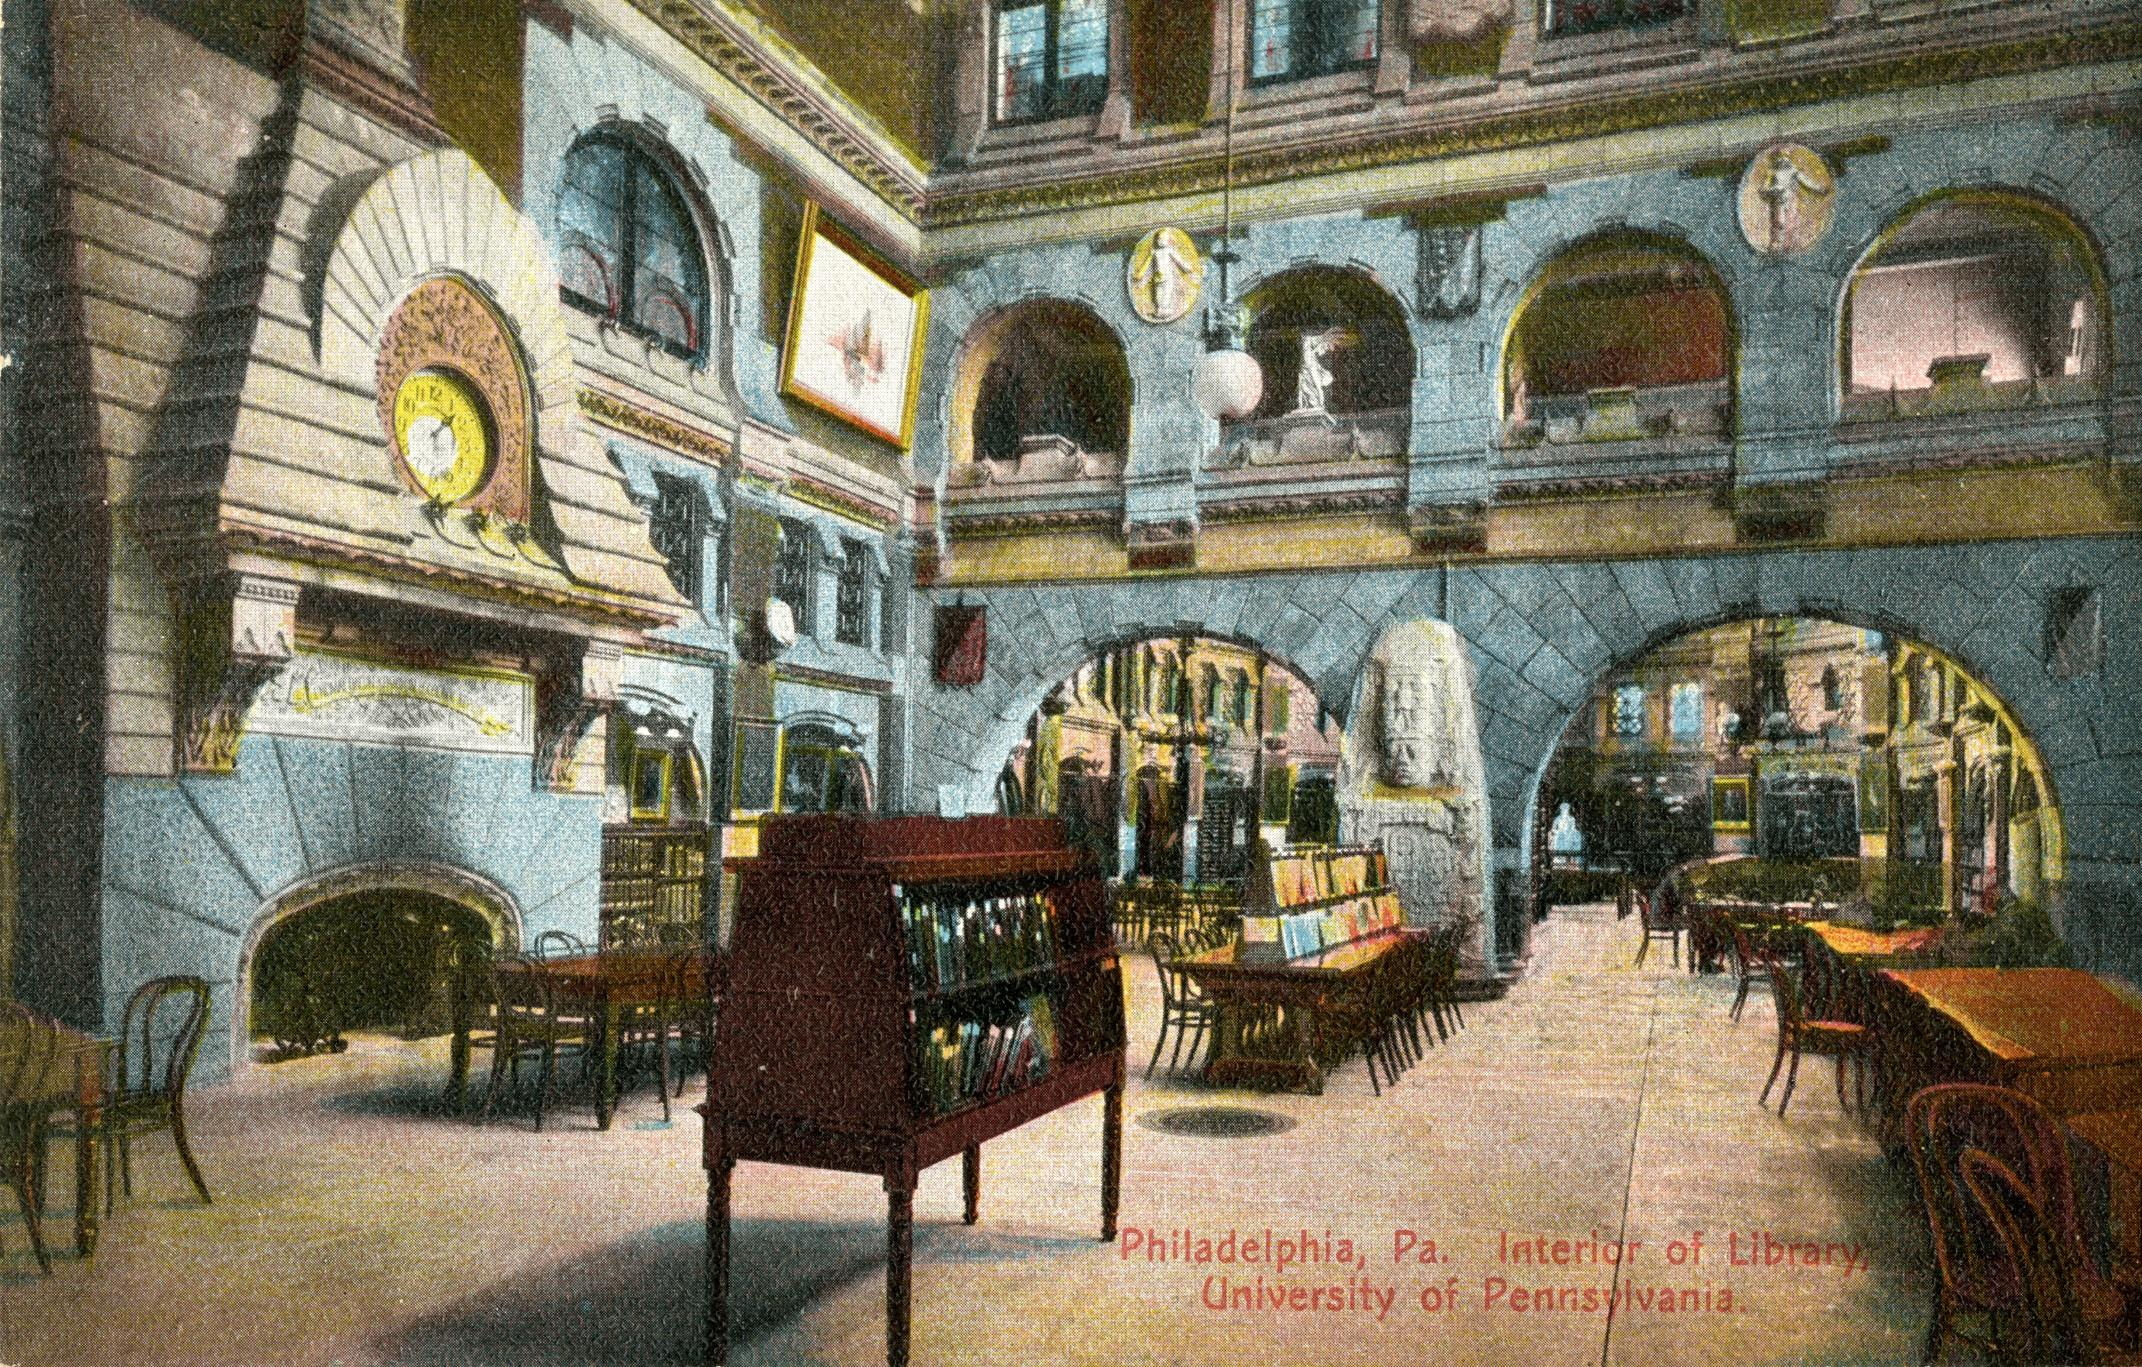 Postcard of of the interior view of the reading room at University Library, now Anne and Jerome Fisher Fine Arts Library